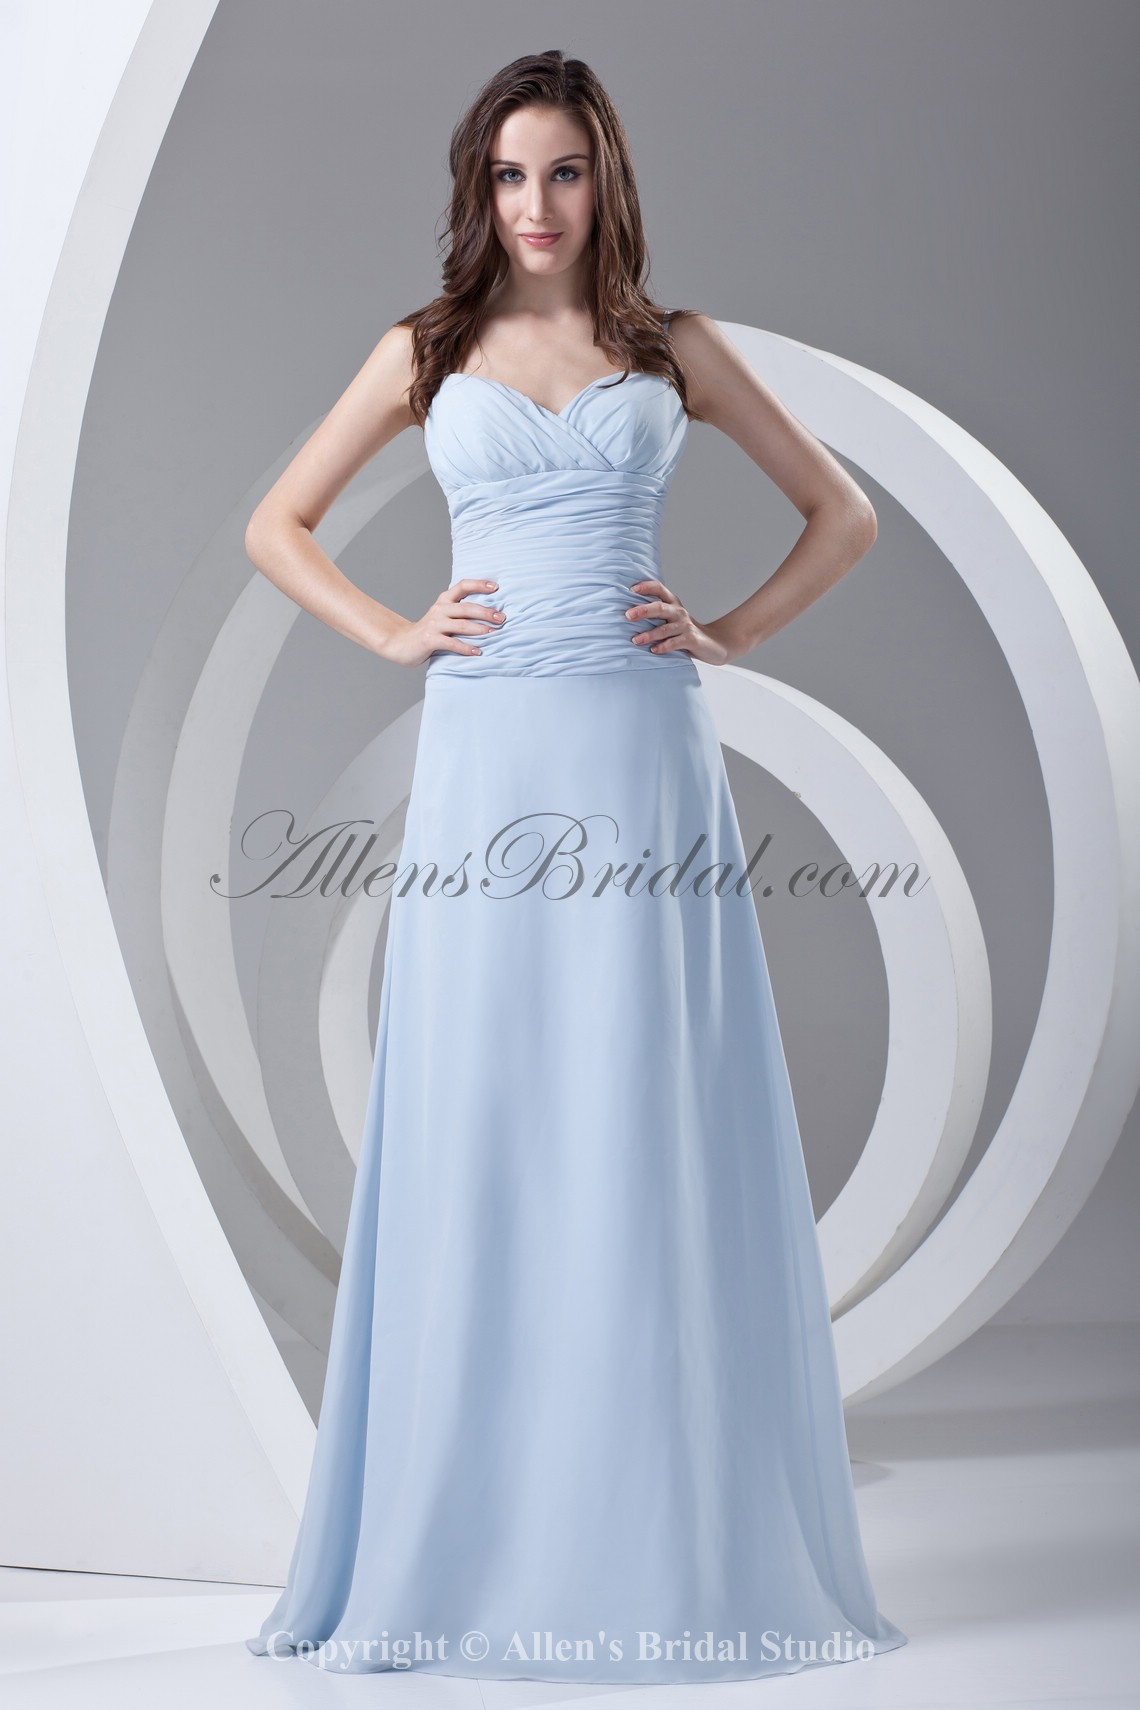 /353-2820/chiffon-spaghetti-straps-sweep-train-a-line-prom-dress.jpg